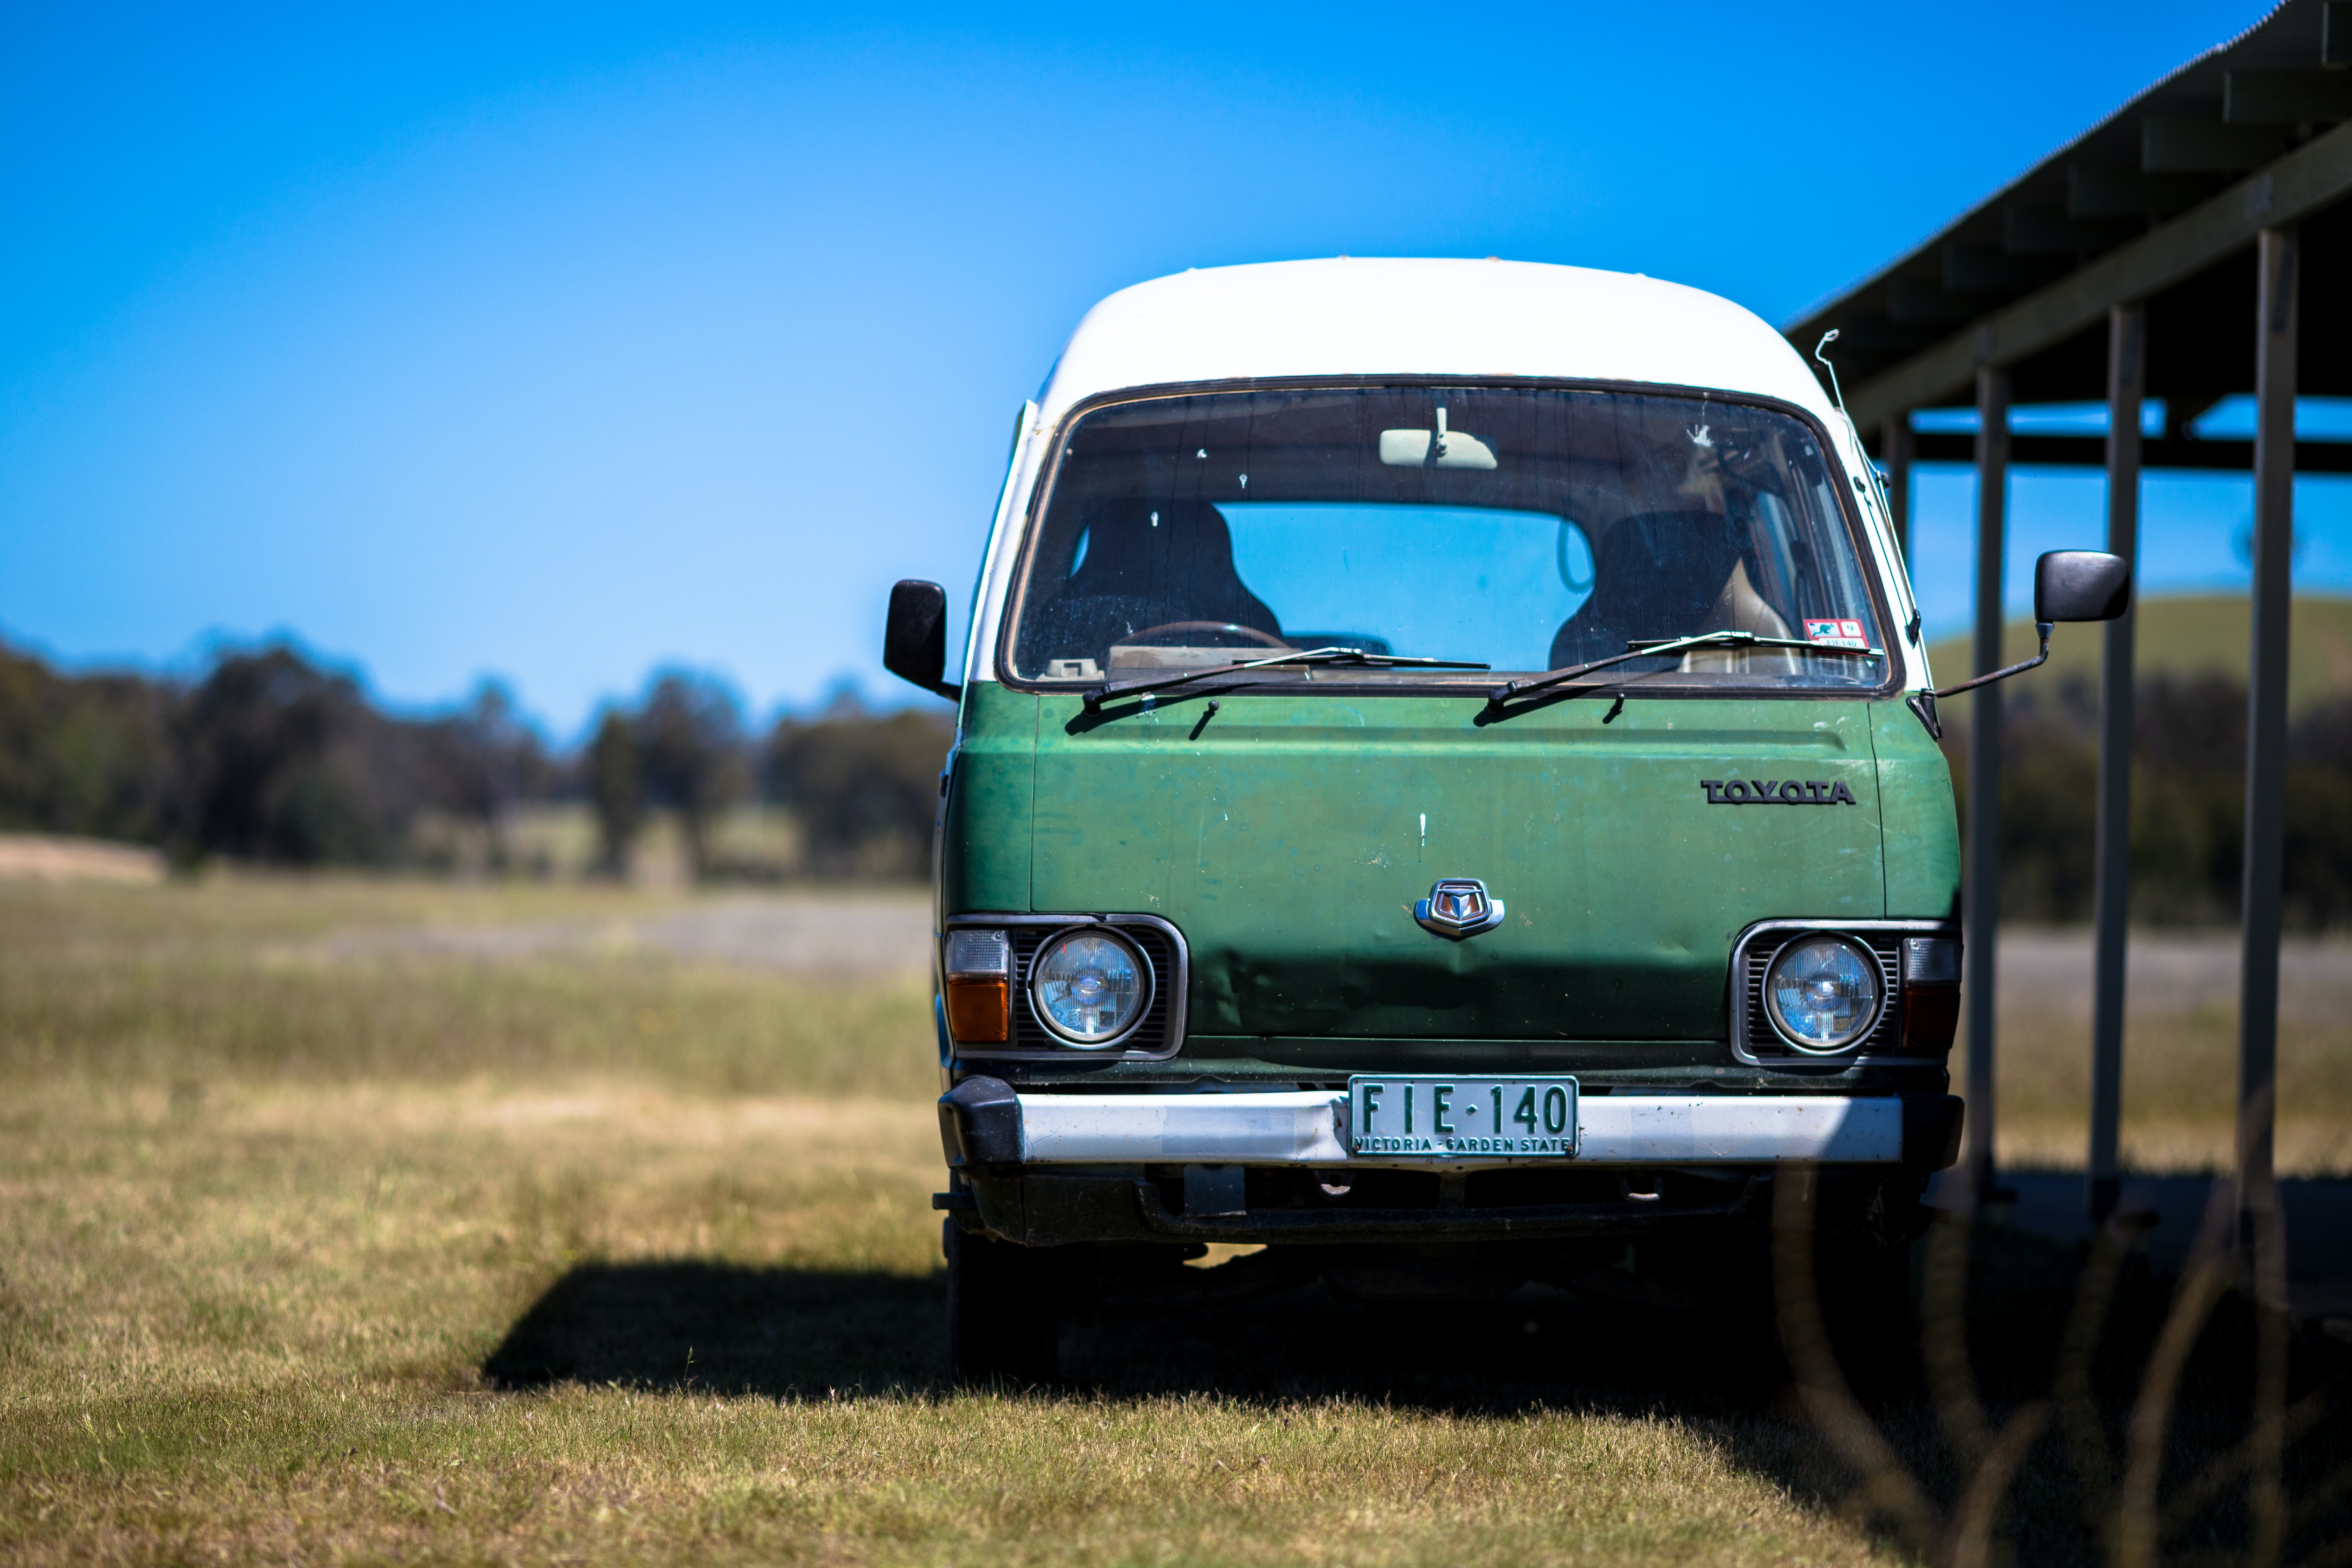 A vintage two tone minivan in the middle of a green field of grass and a blue sky.